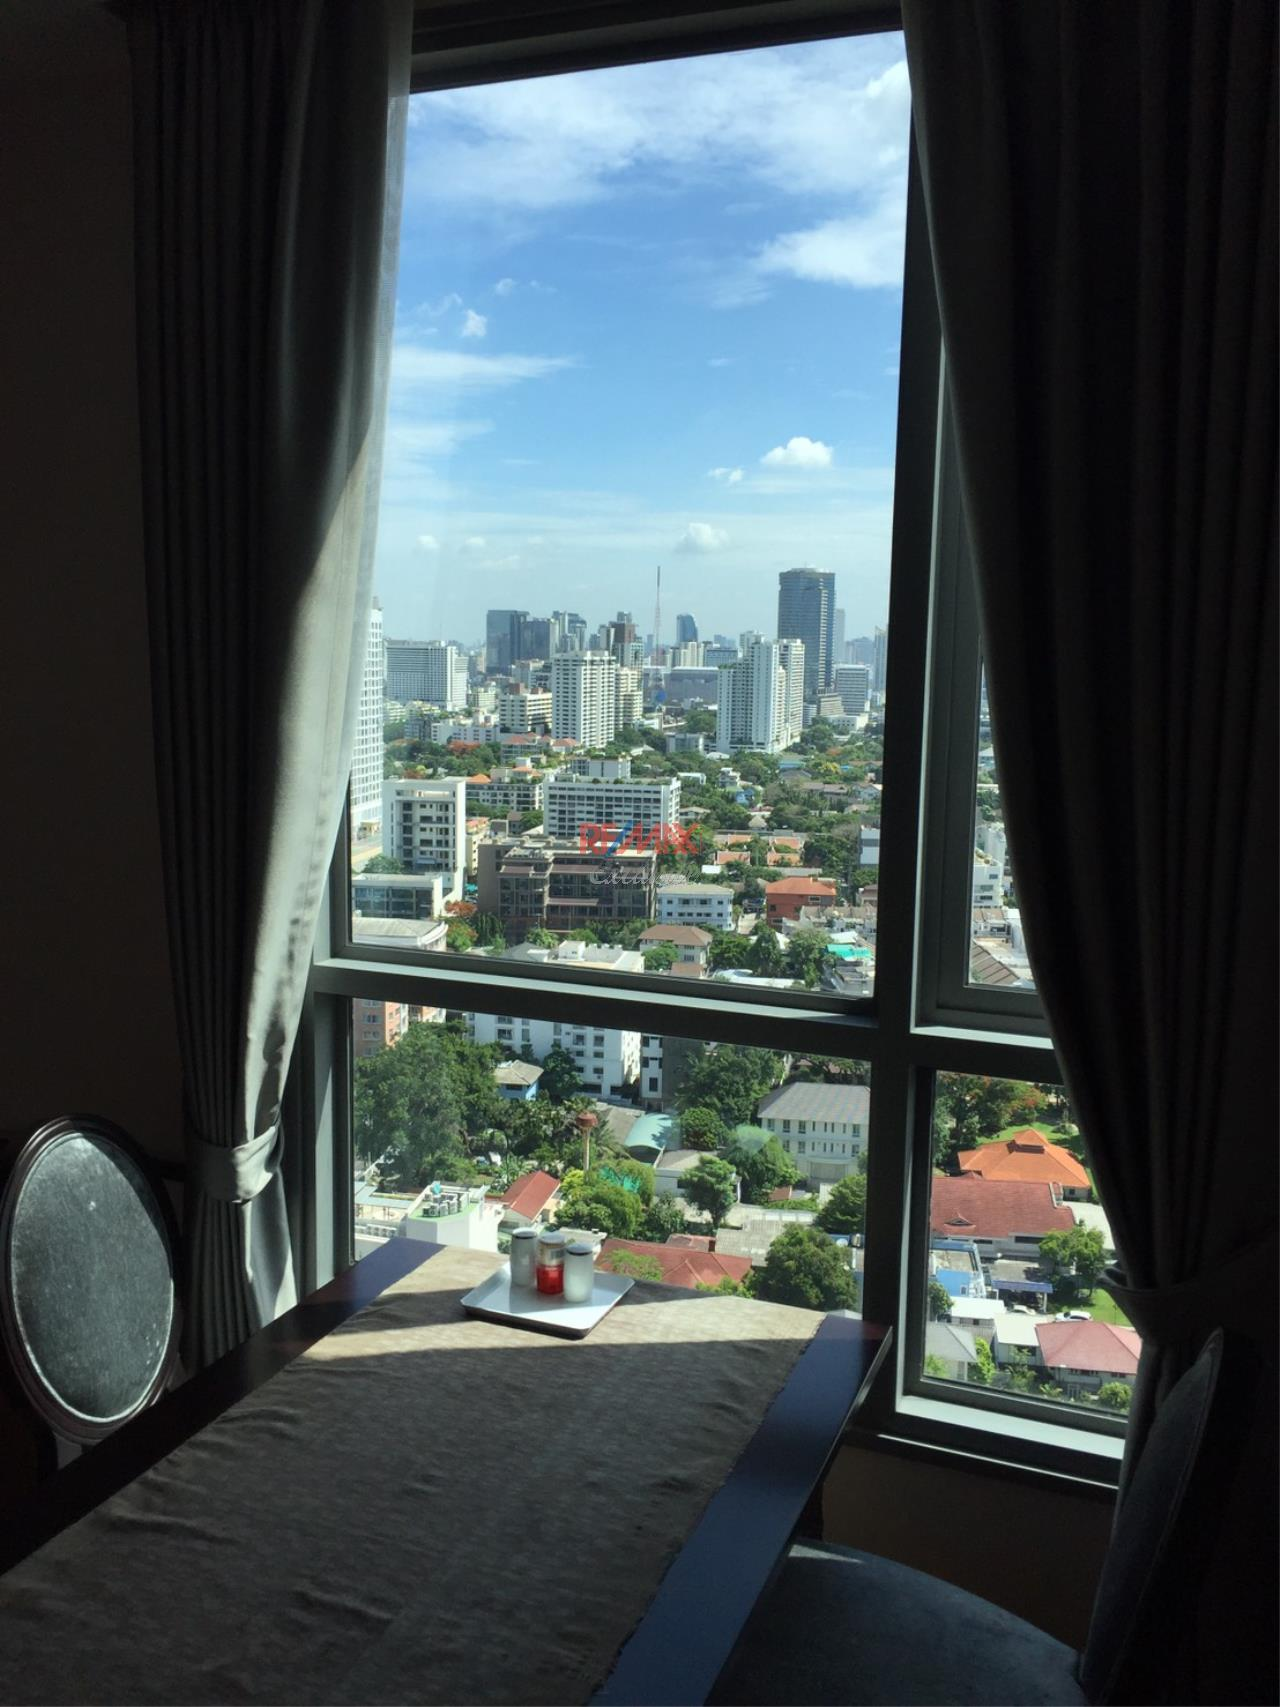 RE/MAX Exclusive Agency's H Sukhumvit 43, 2 Bedroom, 59 Sq.M., Fully-Furnished, High floor - Amazing View! 4